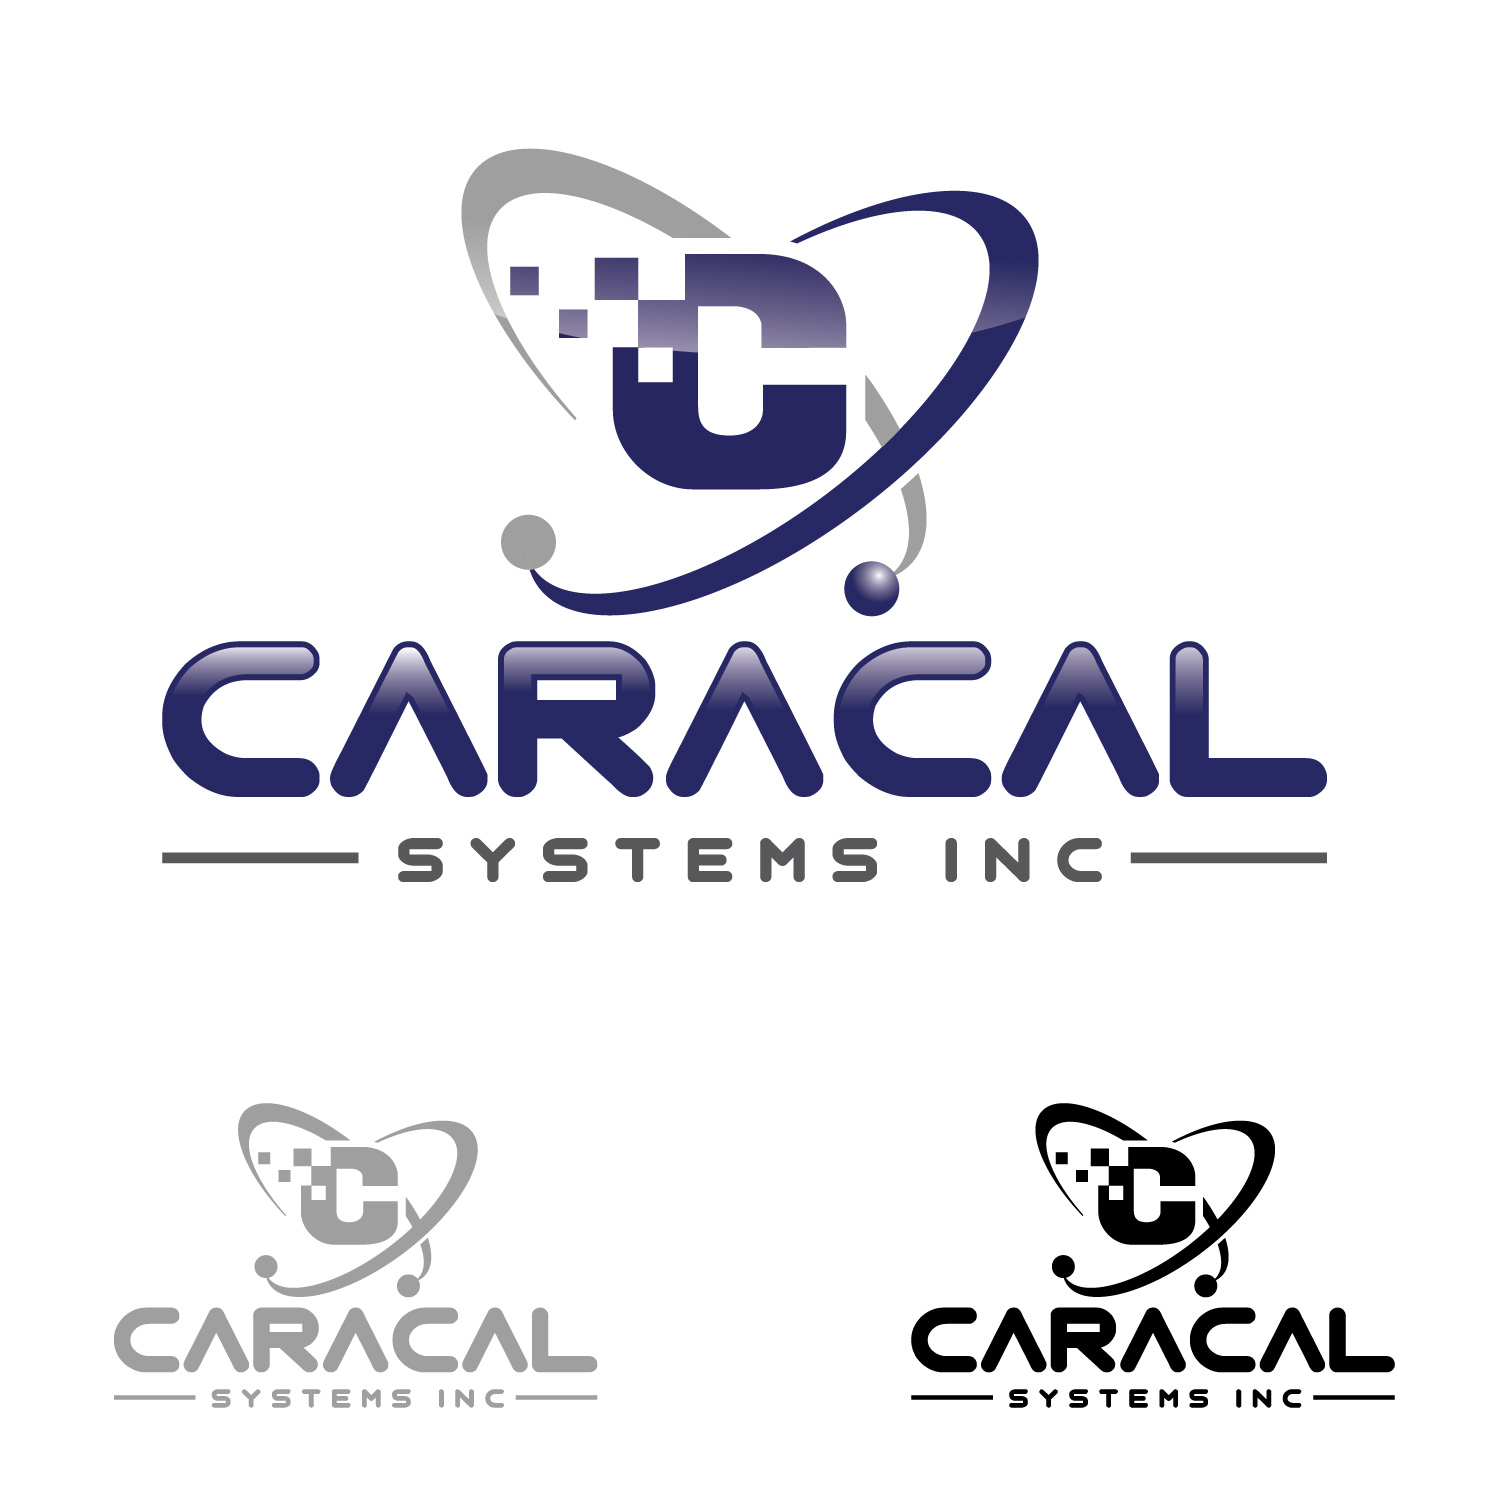 Logo Design by lagalag - Entry No. 124 in the Logo Design Contest Inspiring Logo Design for Caracal Systems Inc..